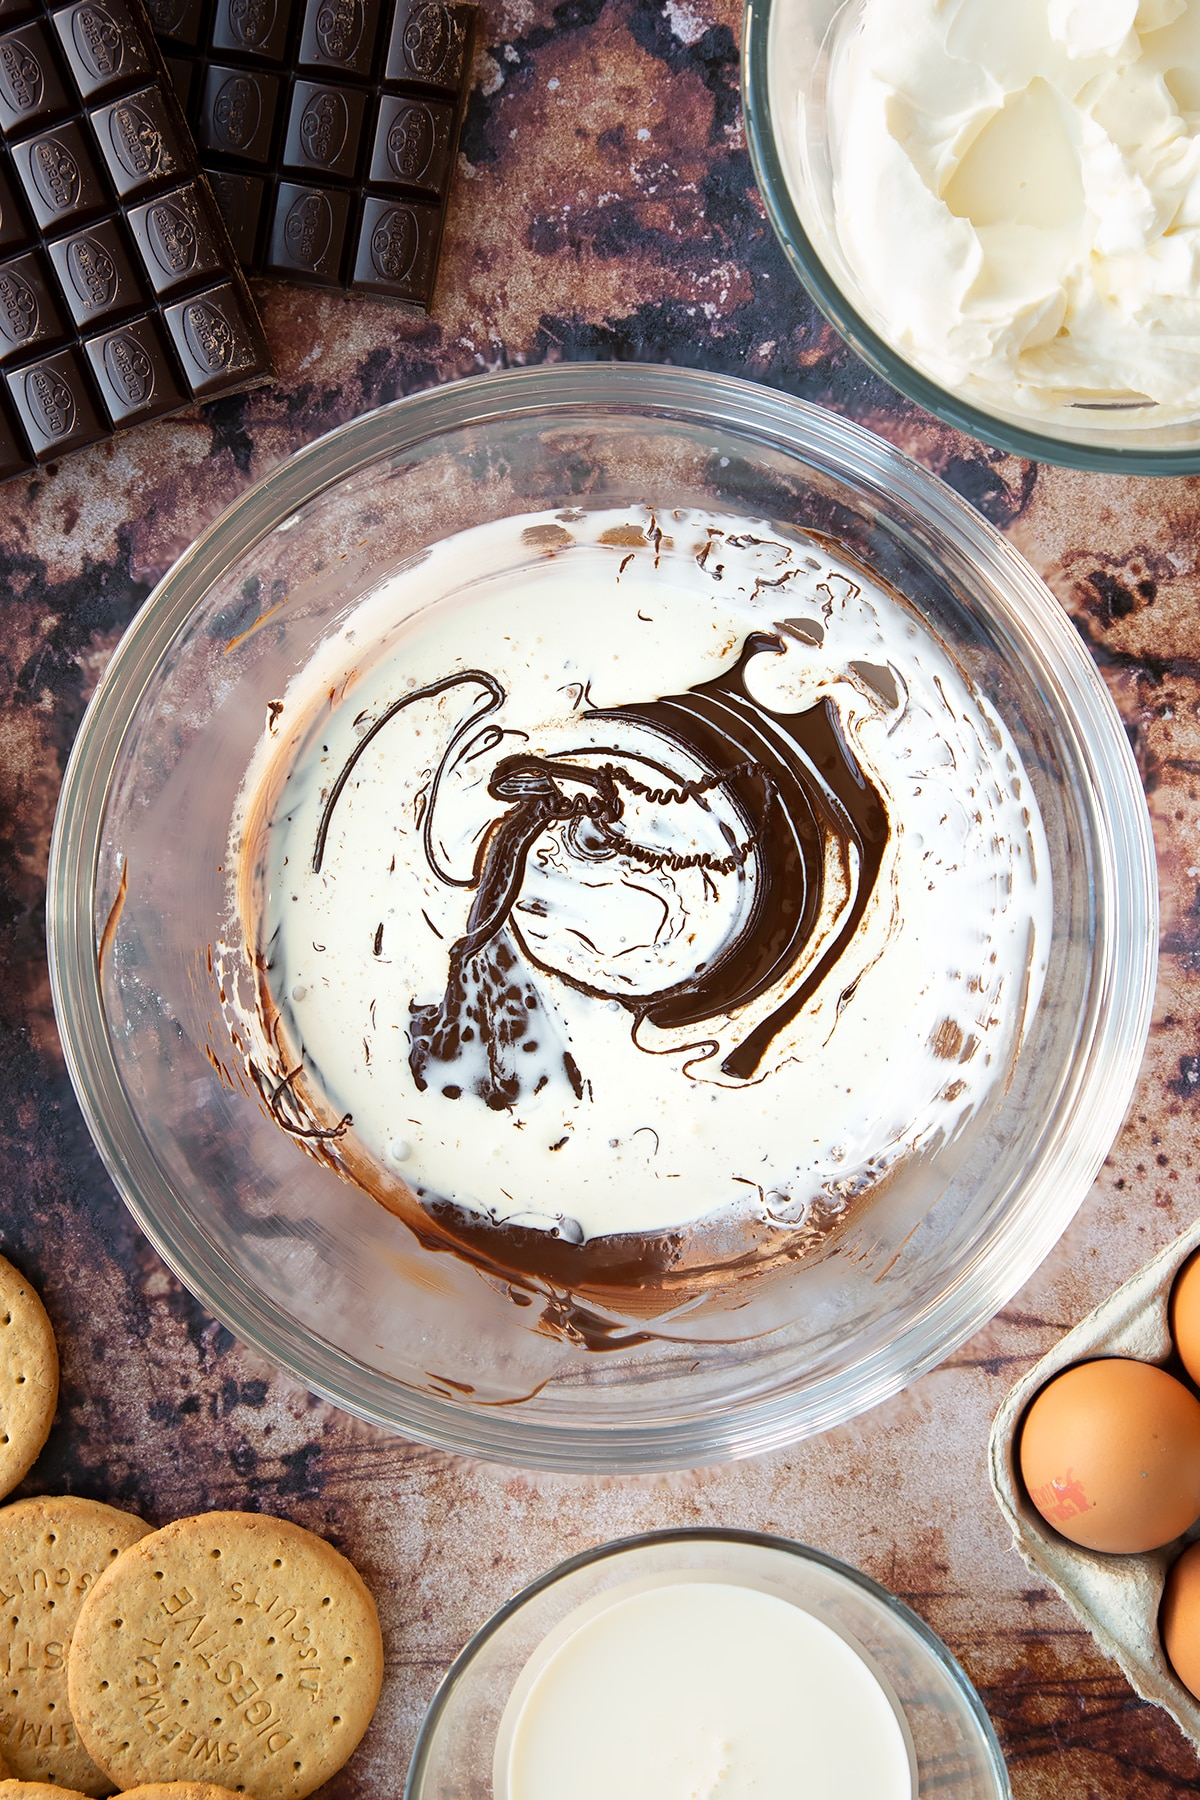 Melted dark chocolate and double cream in a glass bowl. Ingredients to make chocolate cheesecake cupcakes surround the bowl.